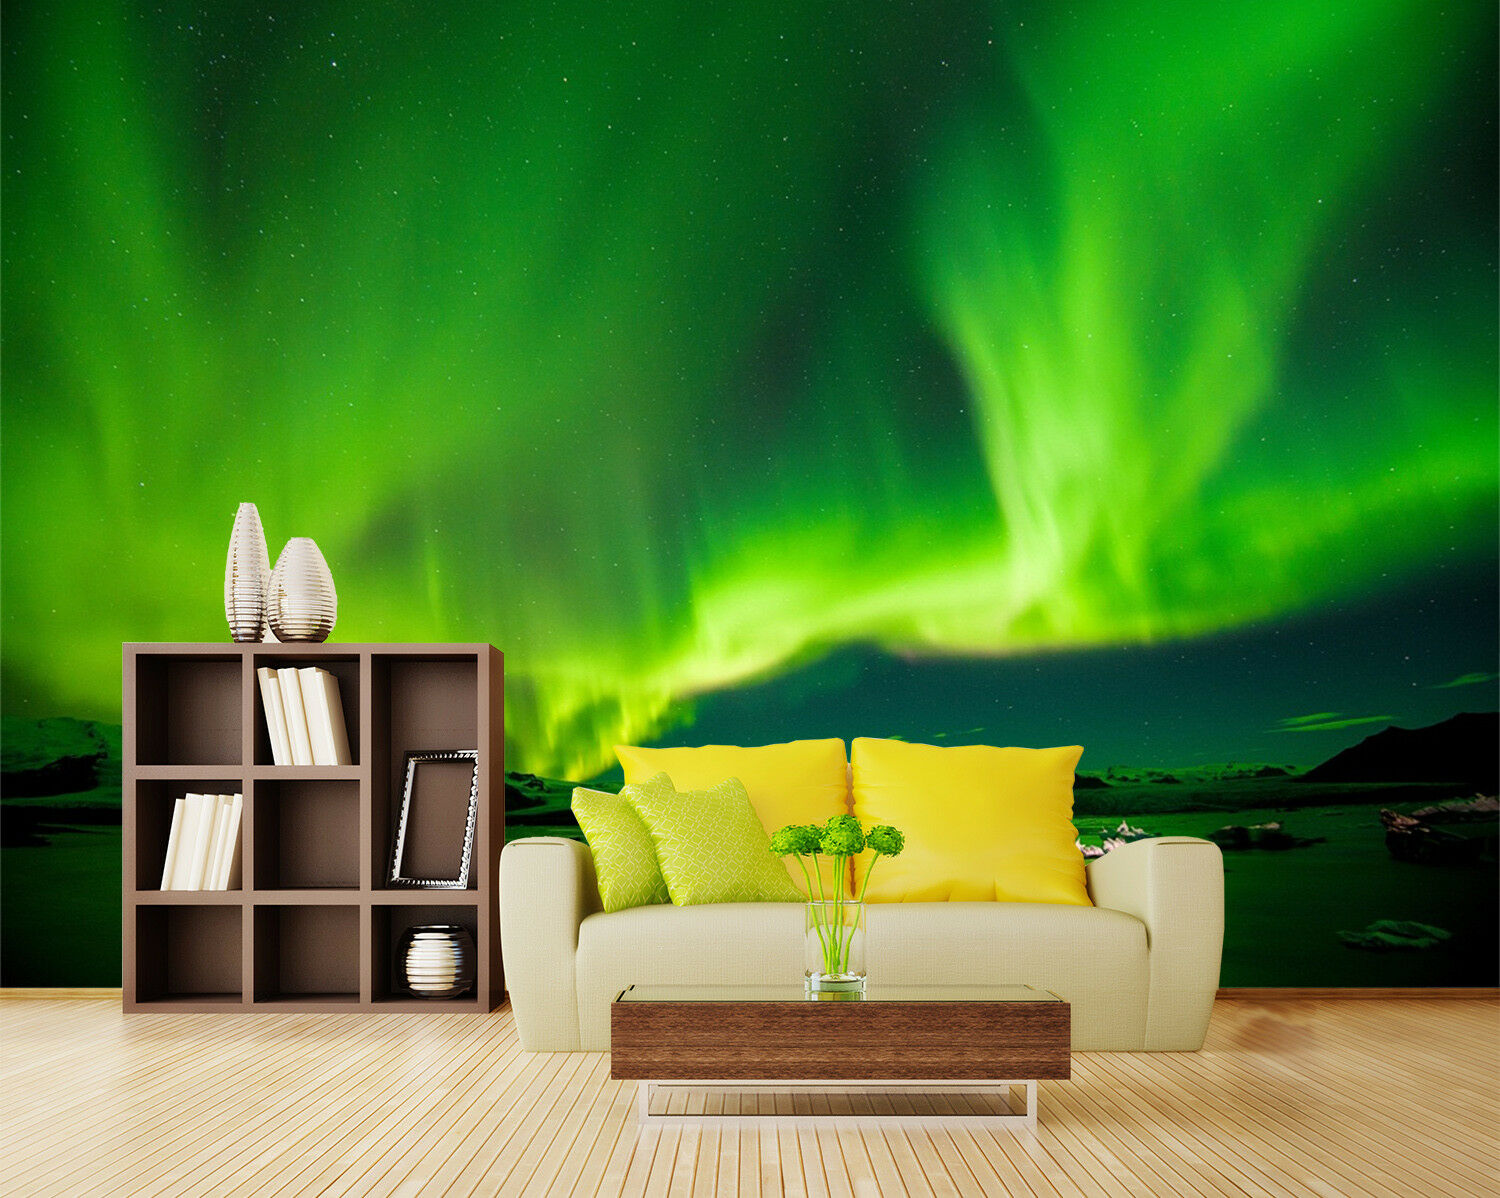 3D Reef Aurora Lake 82 Wallpaper Mural Wall Print Wall Wallpaper Murals US Lemon